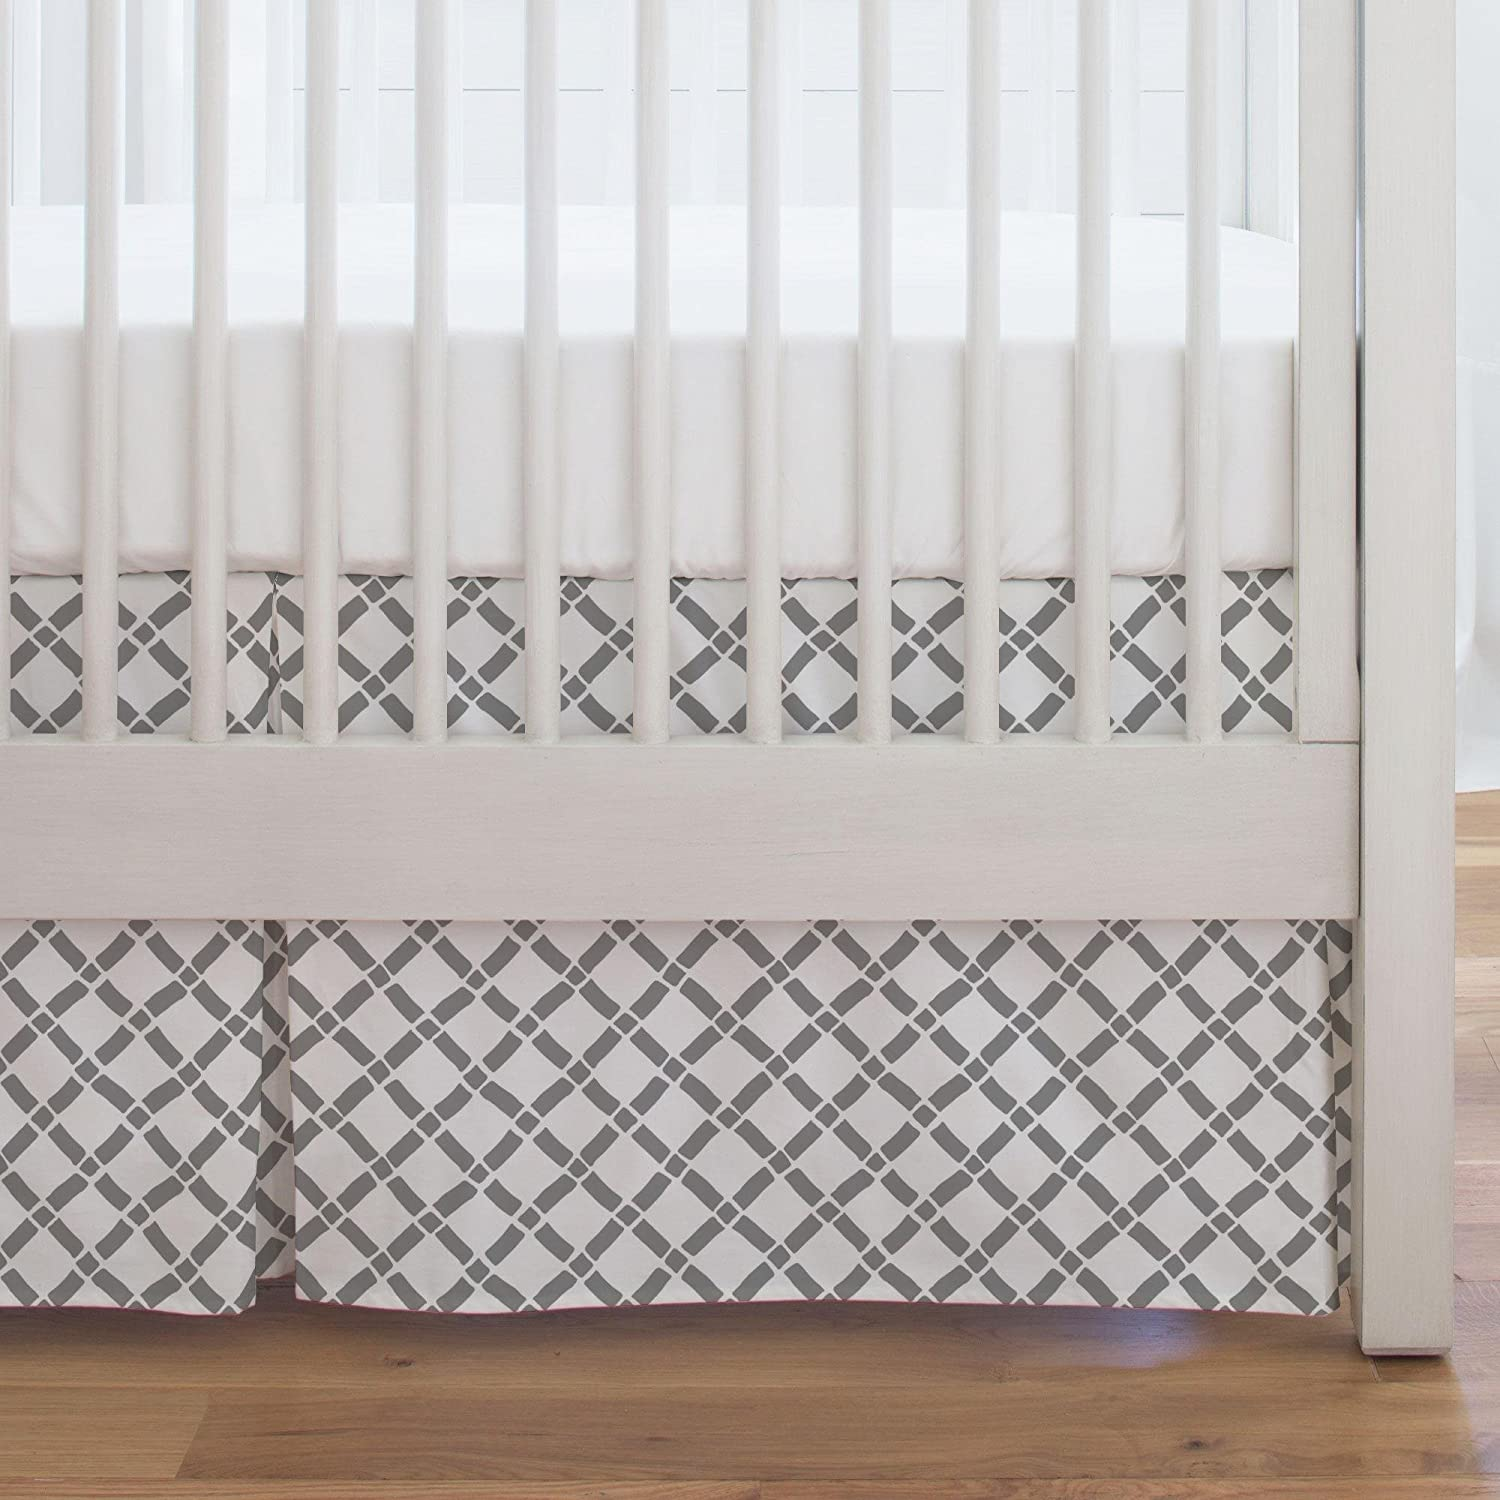 Carousel Designs Cloud Gray Hand Drawn Lattice Crib Skirt Single-Pleat 17-Inch Length - Organic 100% Cotton Crib Skirt - Made in The USA